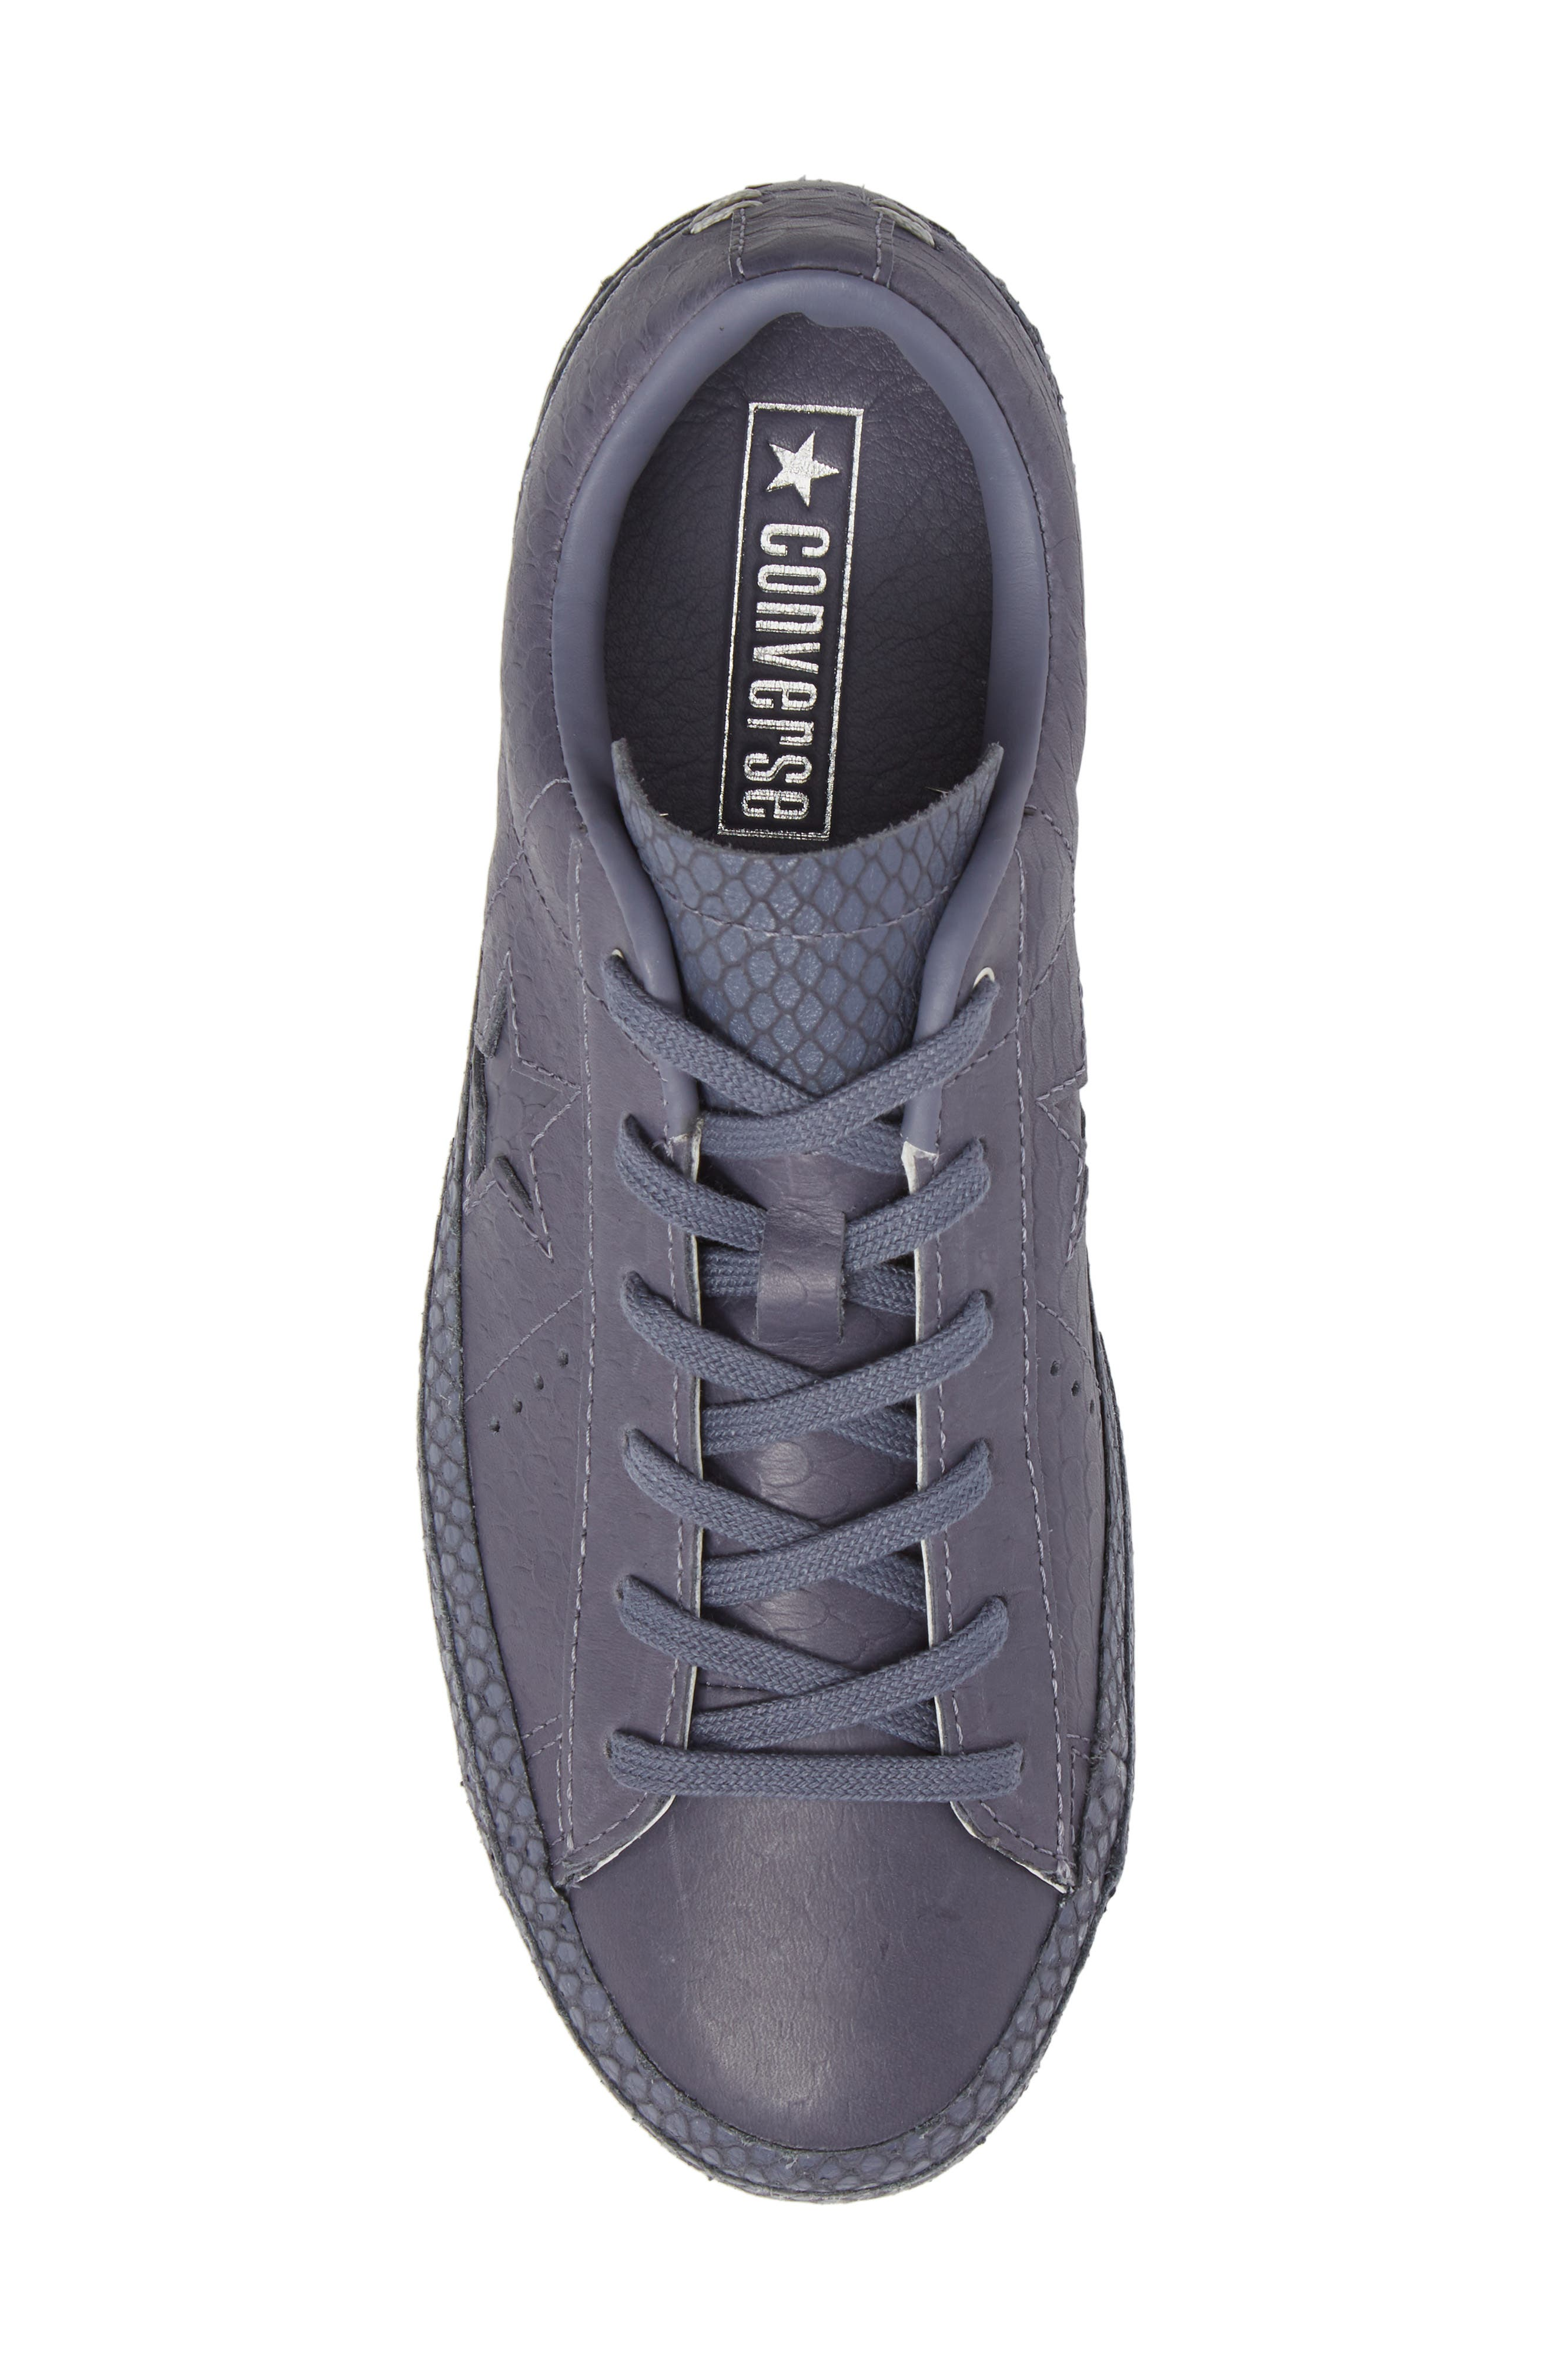 Chuck Taylor<sup>®</sup> All Star<sup>®</sup> One Star Platform Sneaker,                             Alternate thumbnail 5, color,                             450